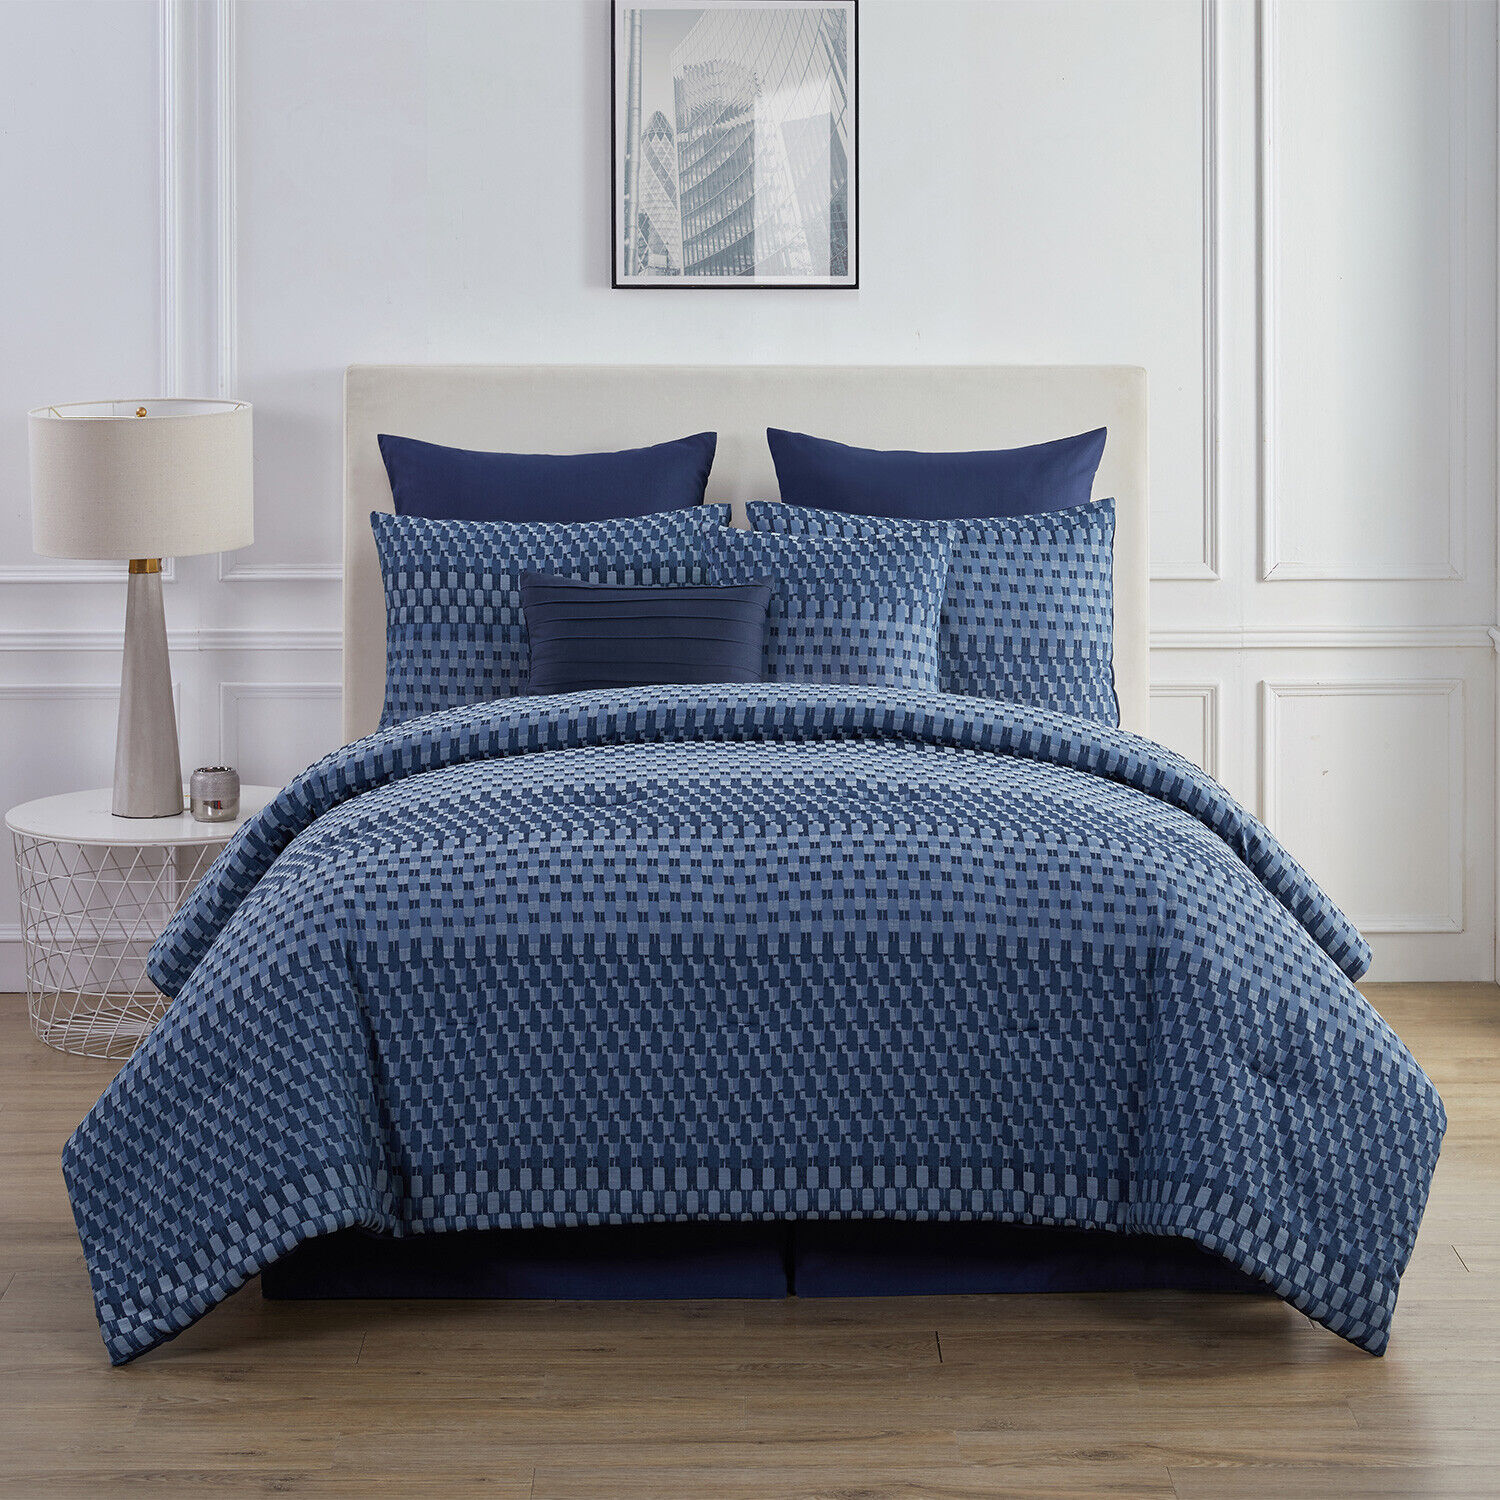 8-Piece King or Queen Geometric Comforter and Sham Bedding Set, Navy Blue Grey Bedding